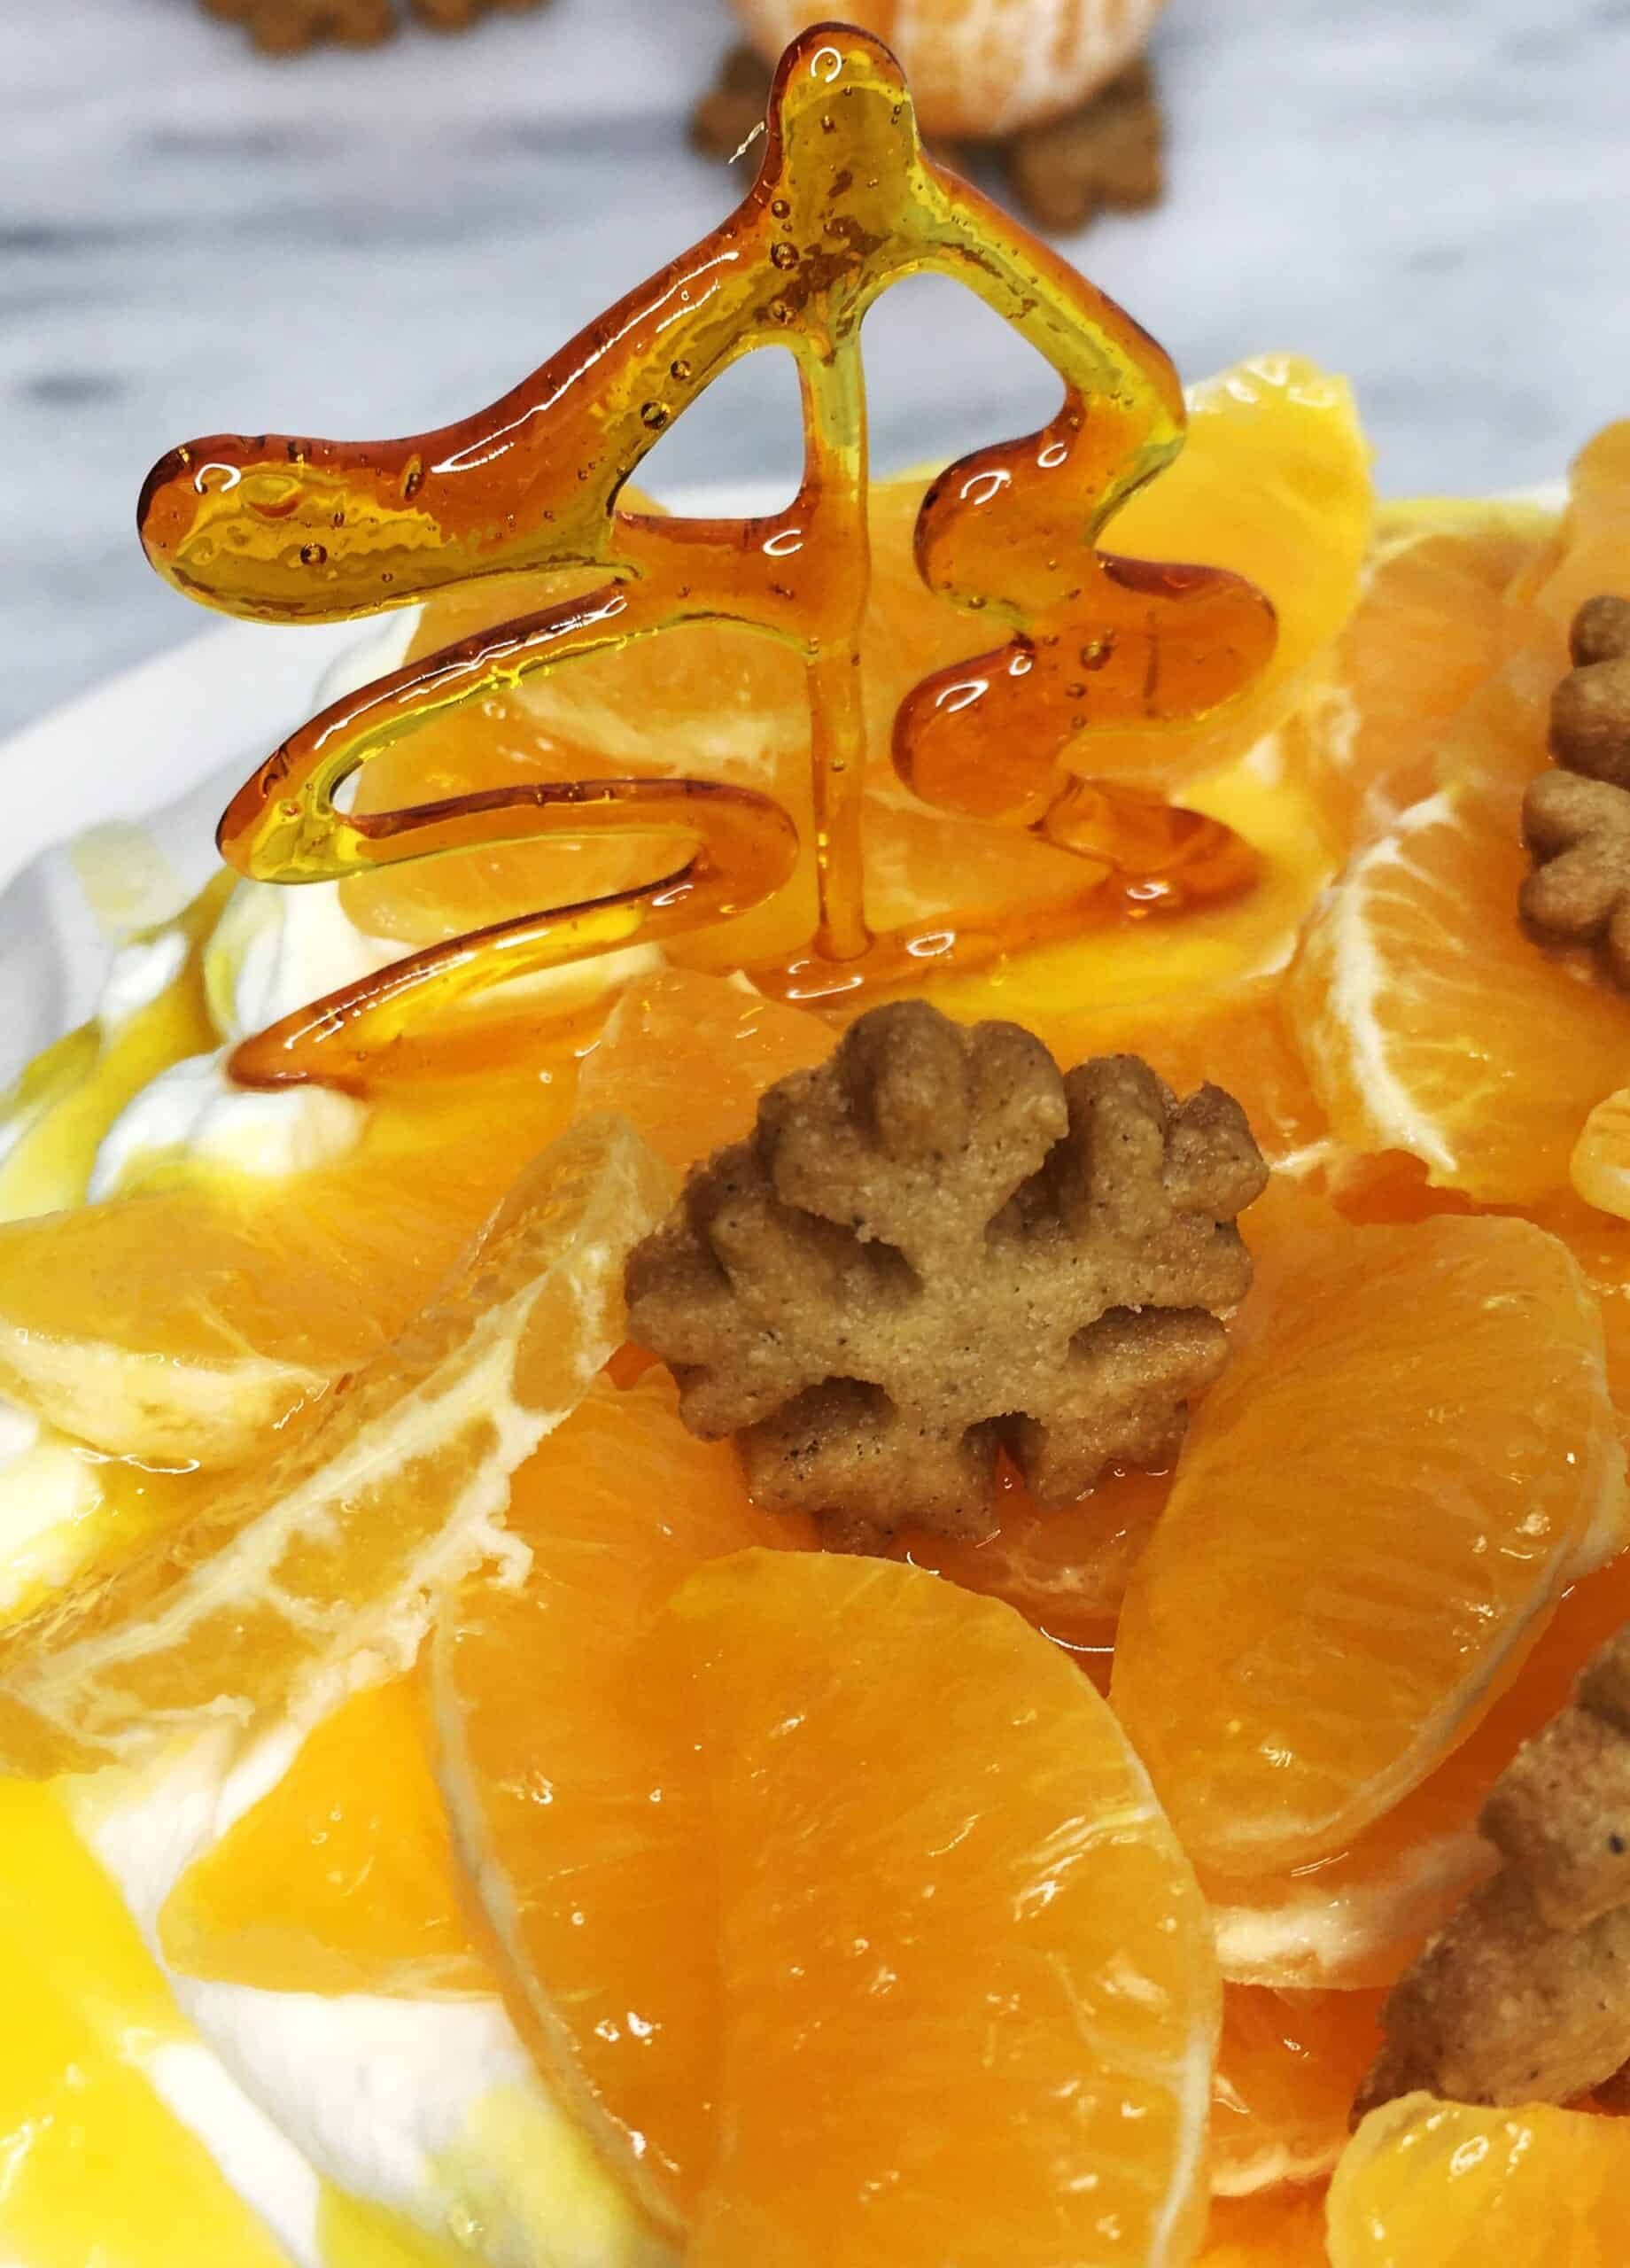 Gingerbread Pavlova cake decorated with mandarins and caramel tree: Close up